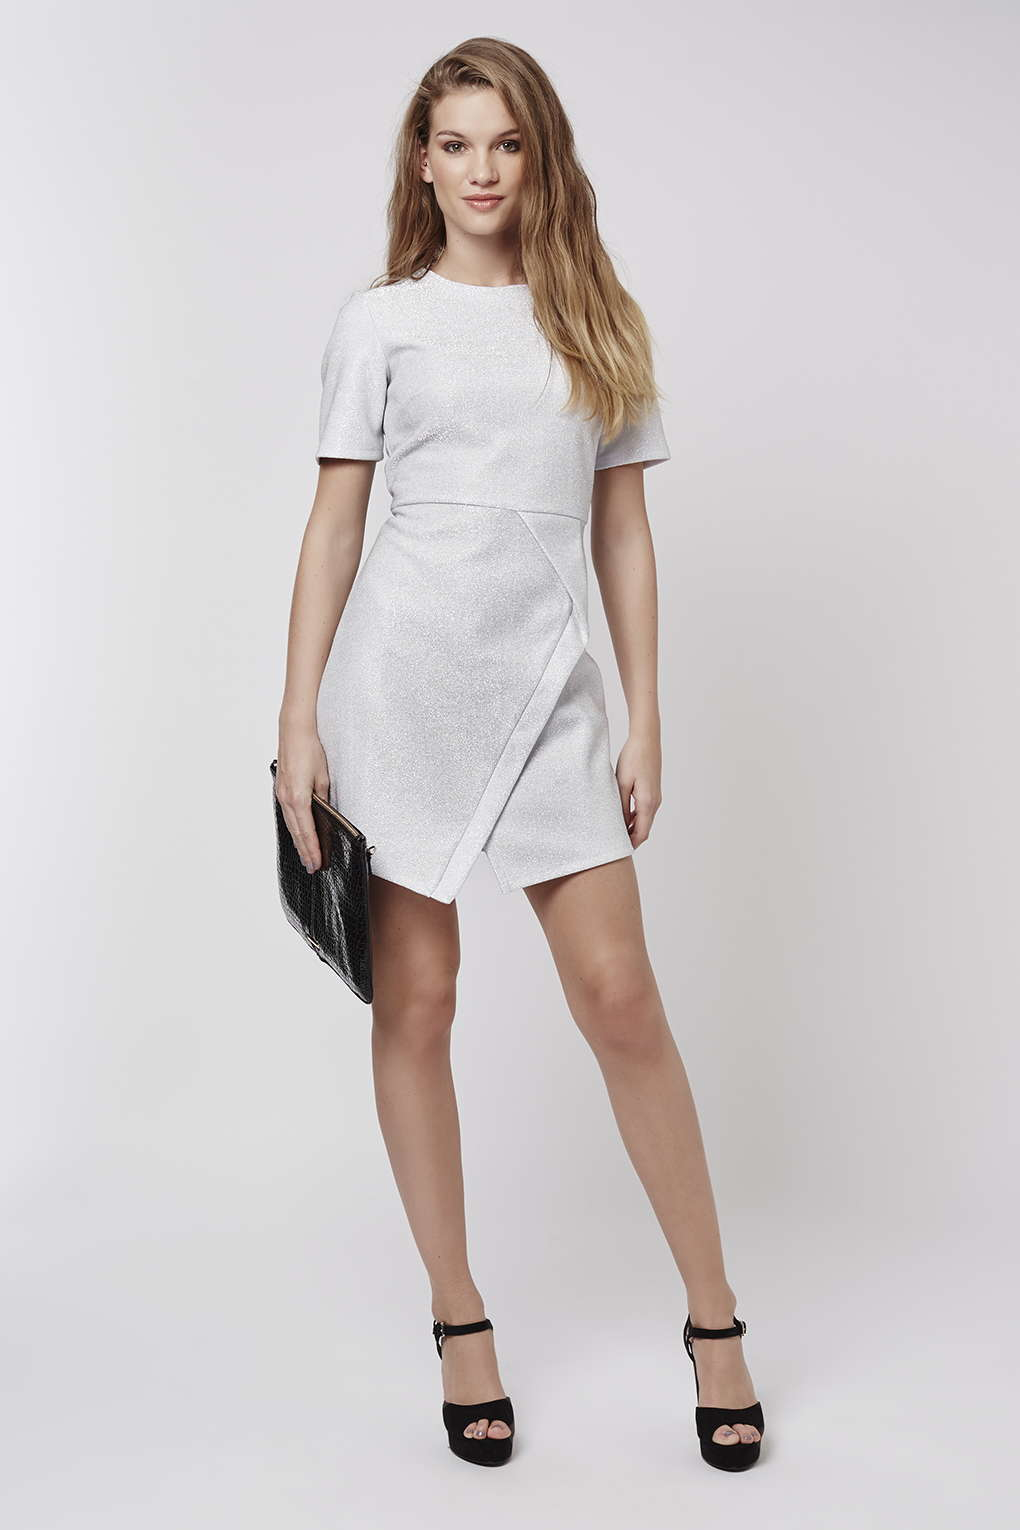 Topshop Tinsel Wrap A-line Dress in White | Lyst